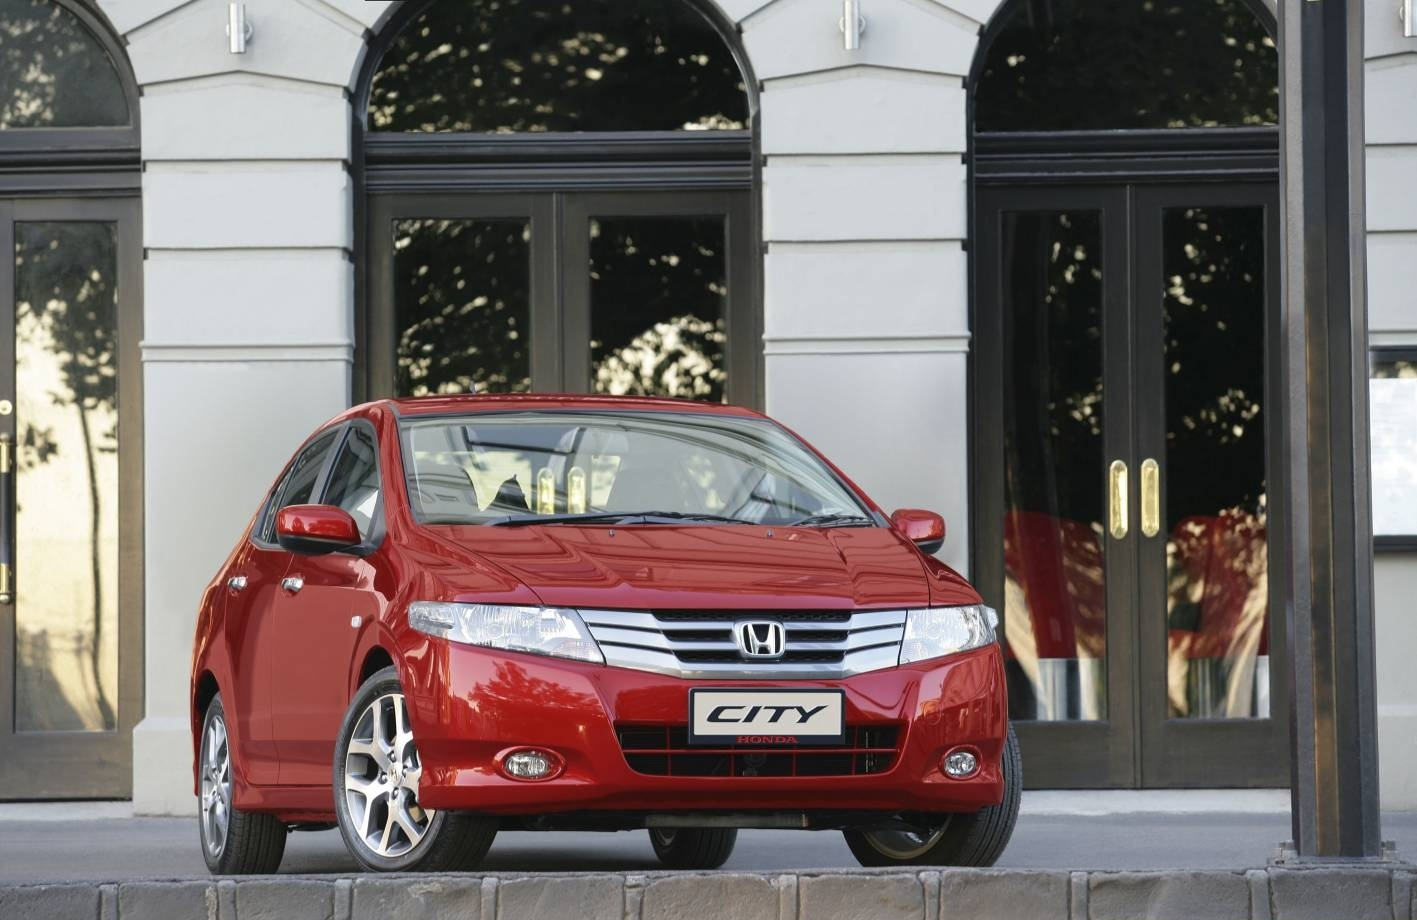 Honda City 2018 Exterior Front End